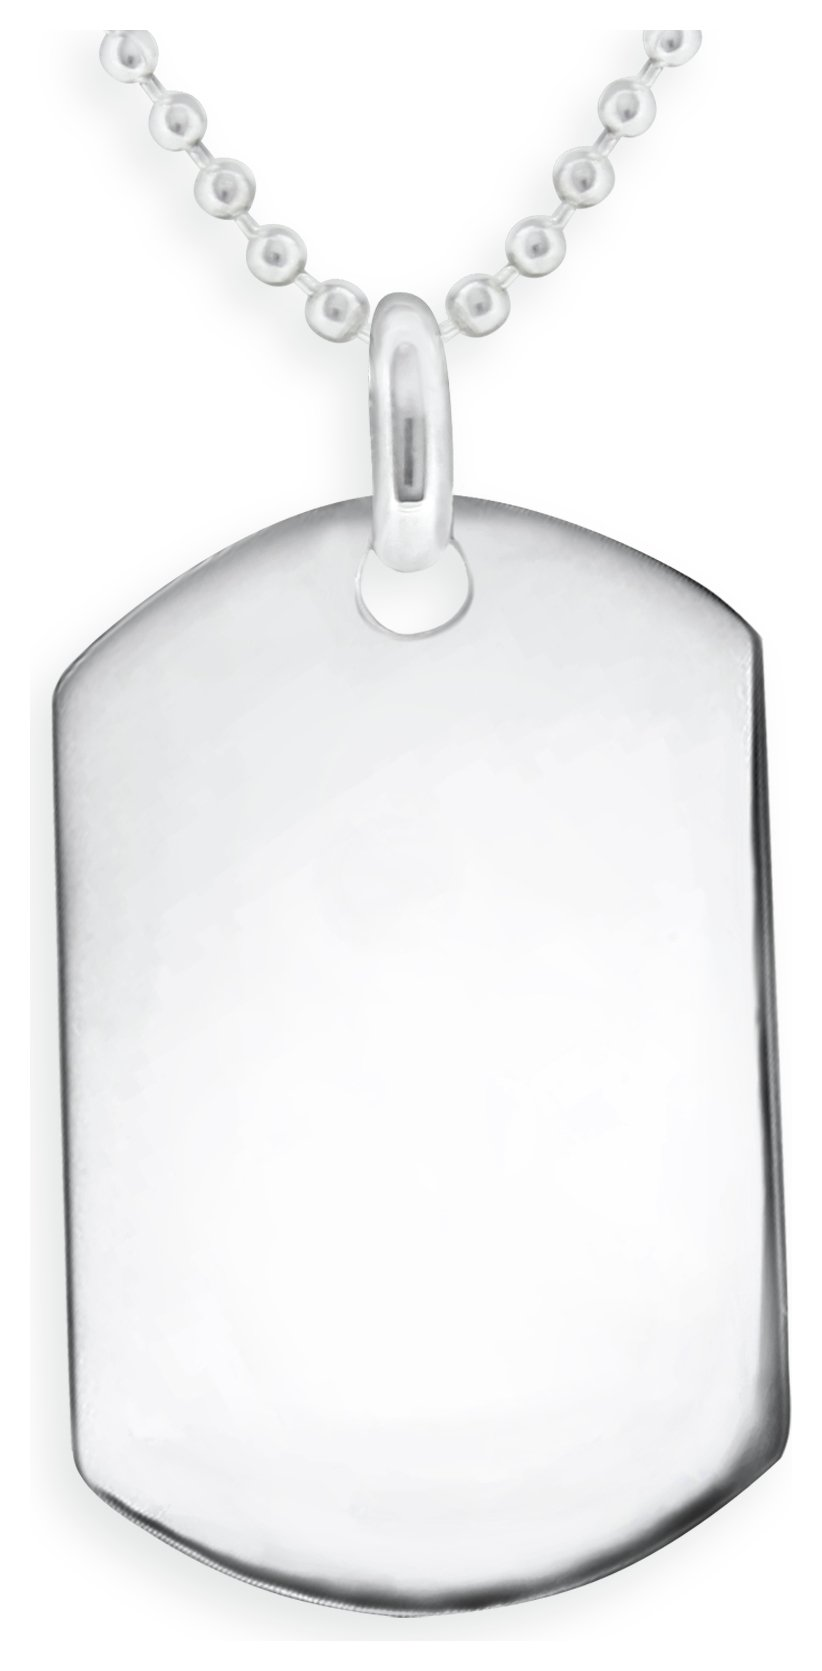 Image of Domain - Sterling Silver - Dog Tag Pendant Boxed